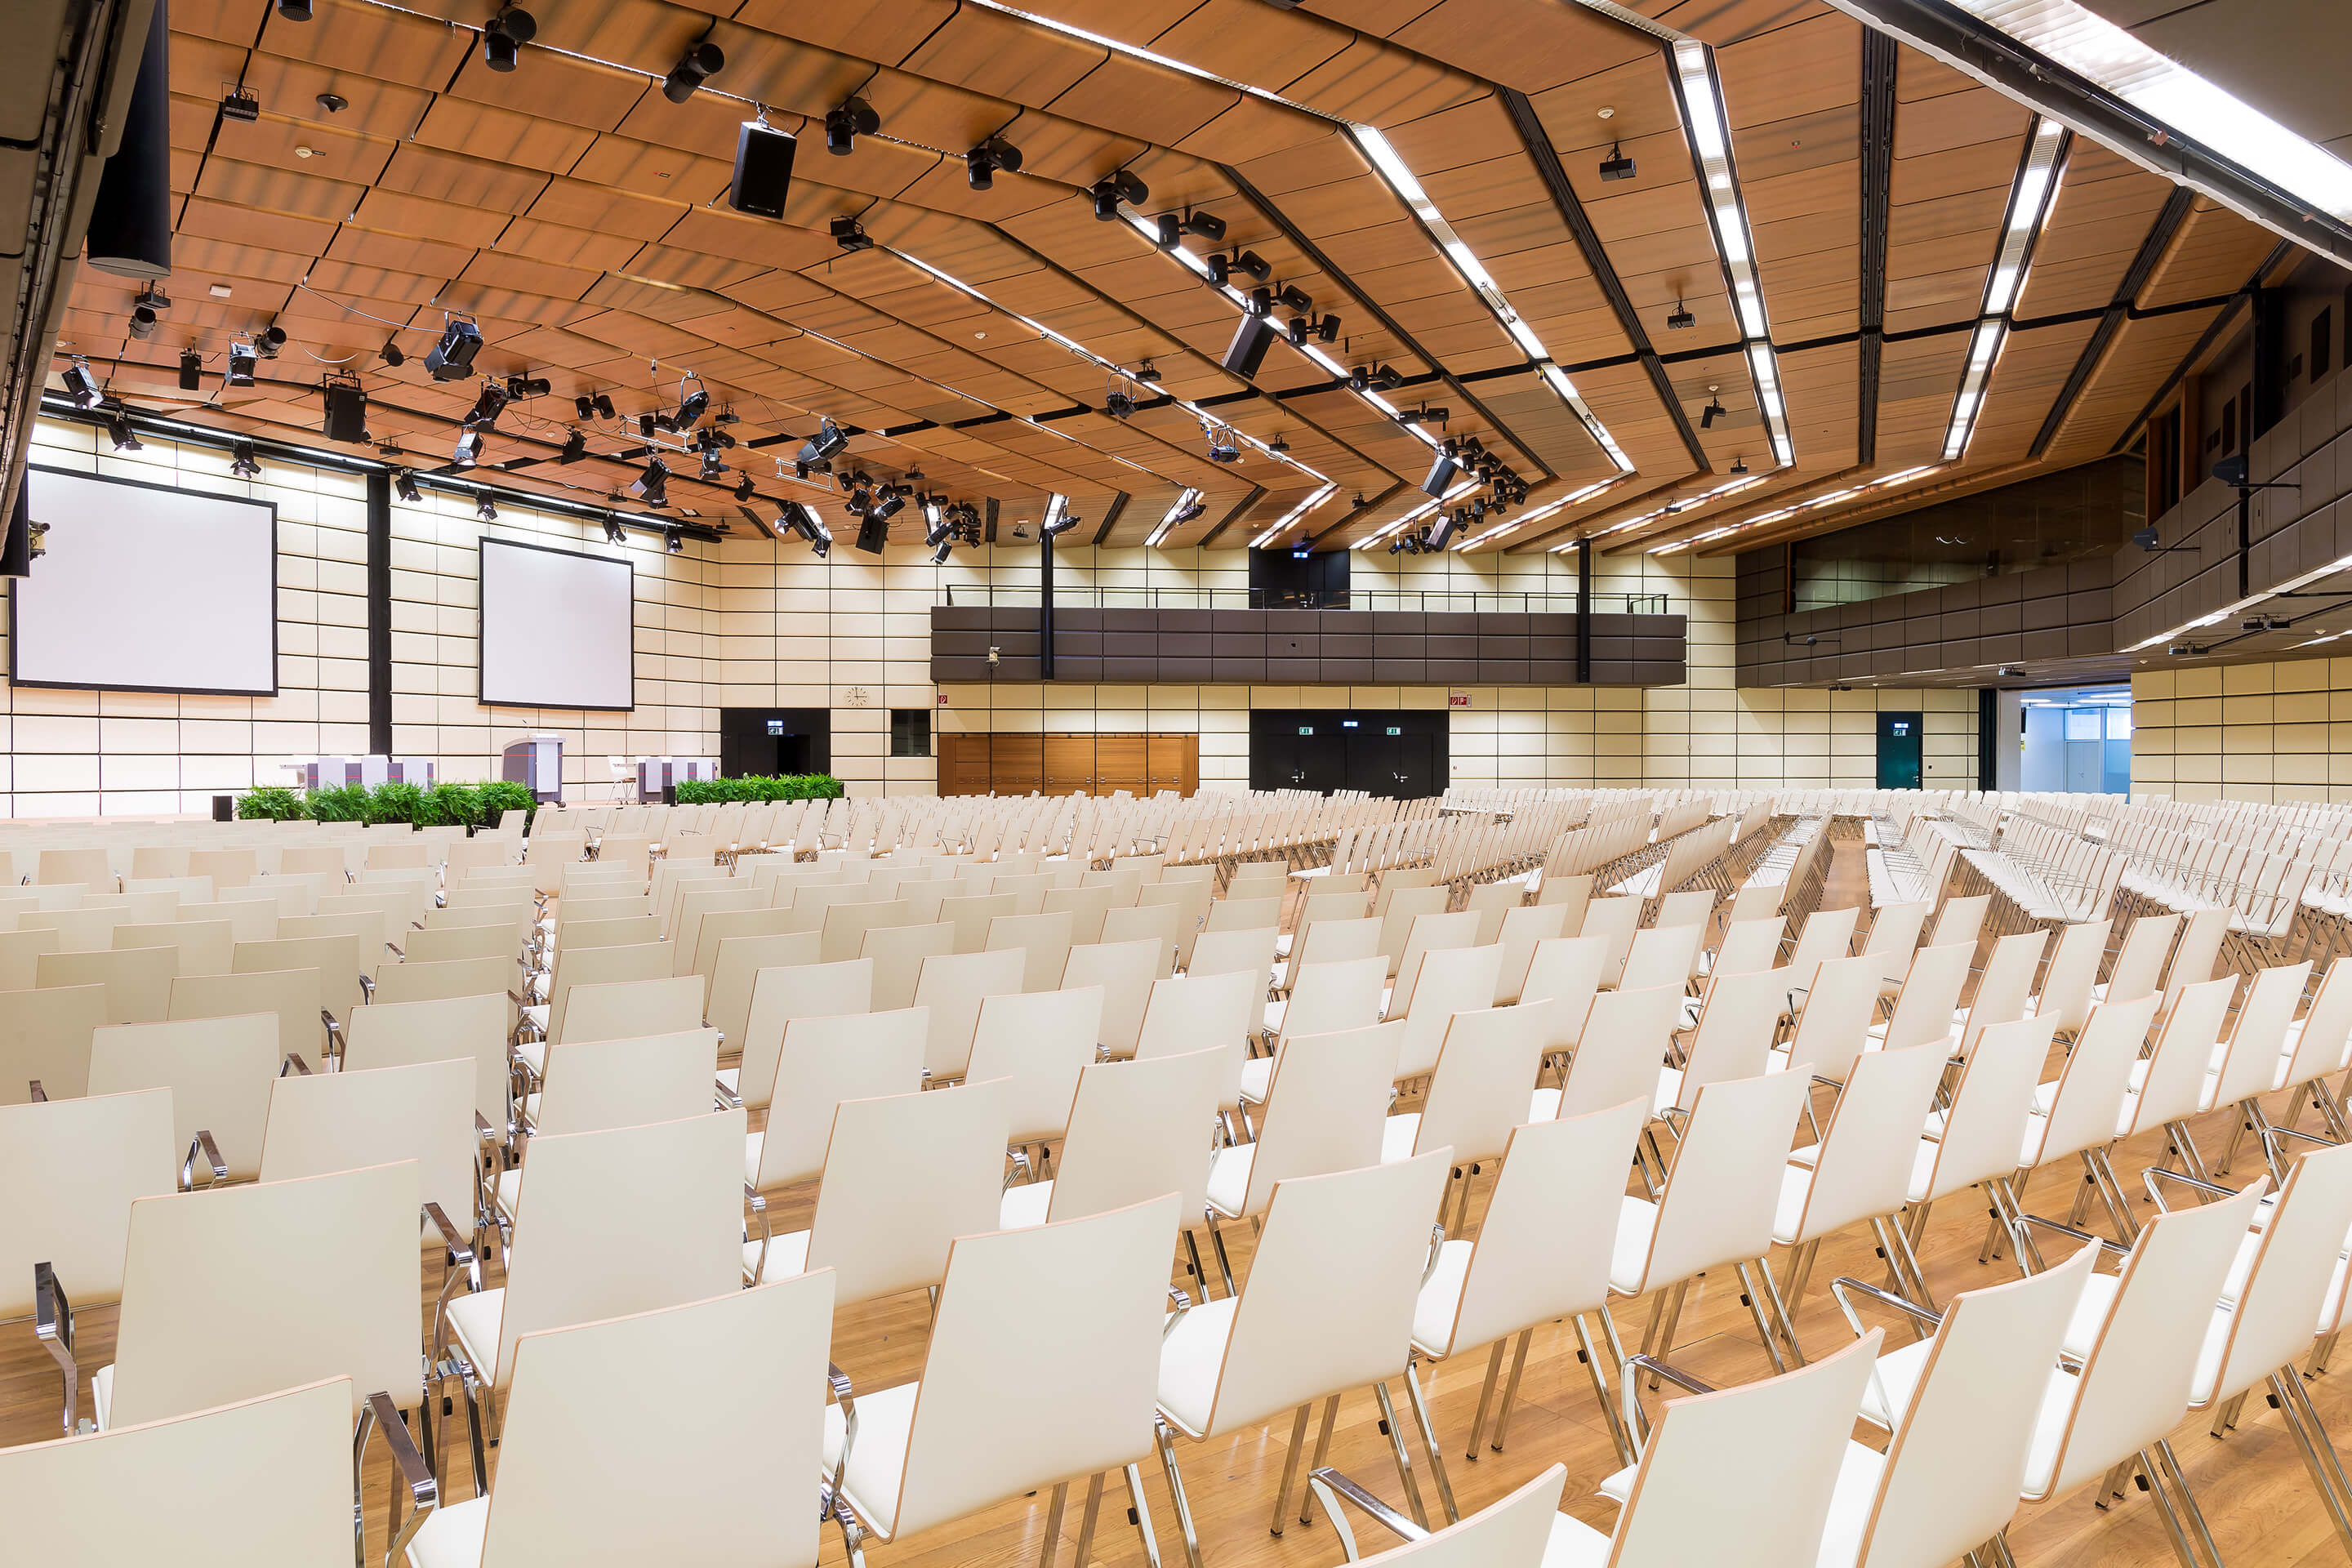 Photo: The main building, Hall E with parliamentary style seating